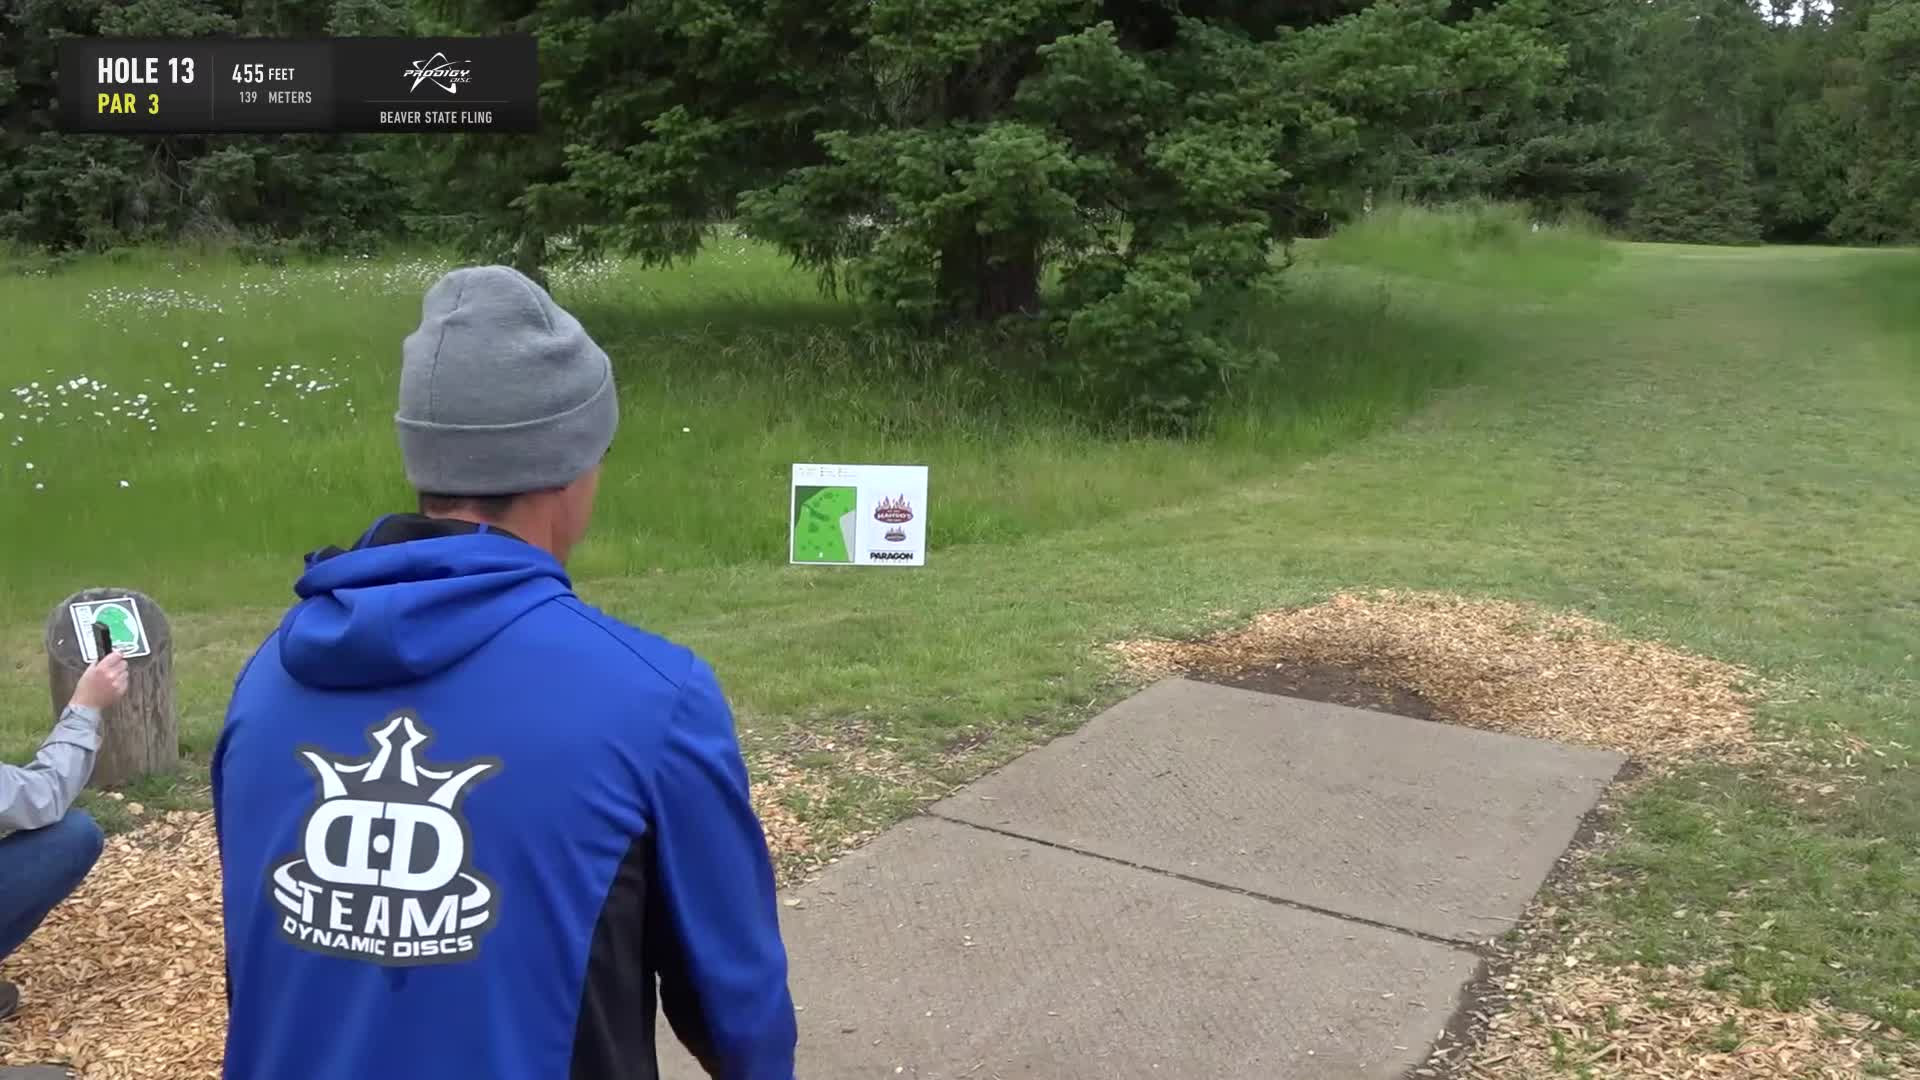 ace, bsf, dela, delaveaga, dgpt, dgwt, disc, disc golf, frolf, hole in one, masters cup, mcbeast, milo, nate sexton, nt, paul mcbeth, pdga, simon lizotte, tournament, worlds, 2019 Beaver State Fling - Round 2 Part 2 - AJ Risley hole 13 drive GIFs